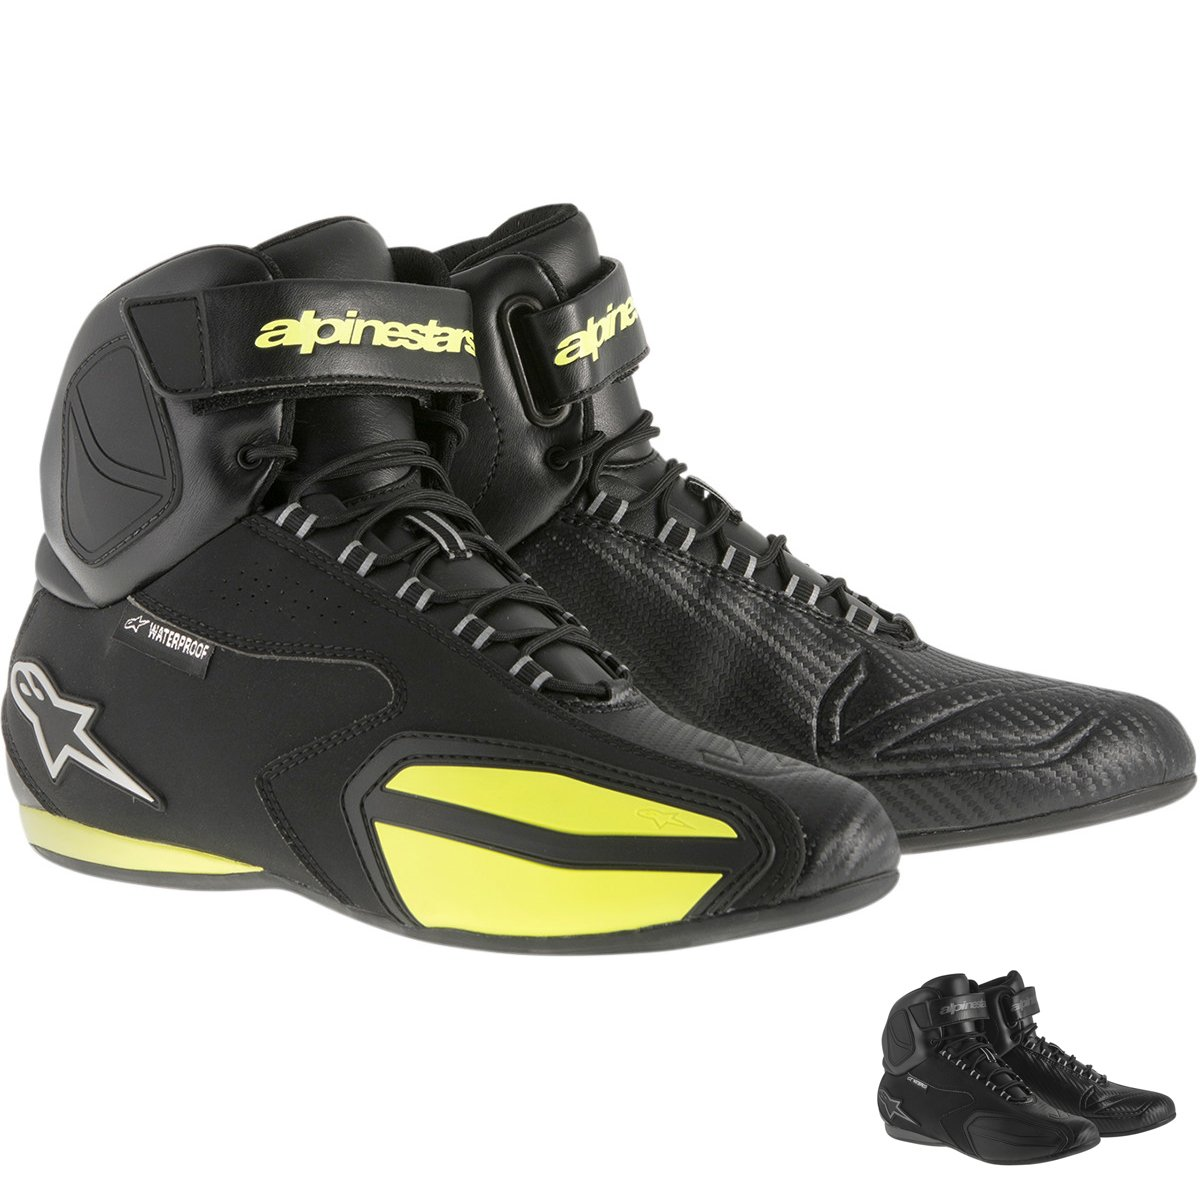 Alpinestars Faster Waterproof Street Riding Motorcycle Shoes Black/Yellow Mens Size 11